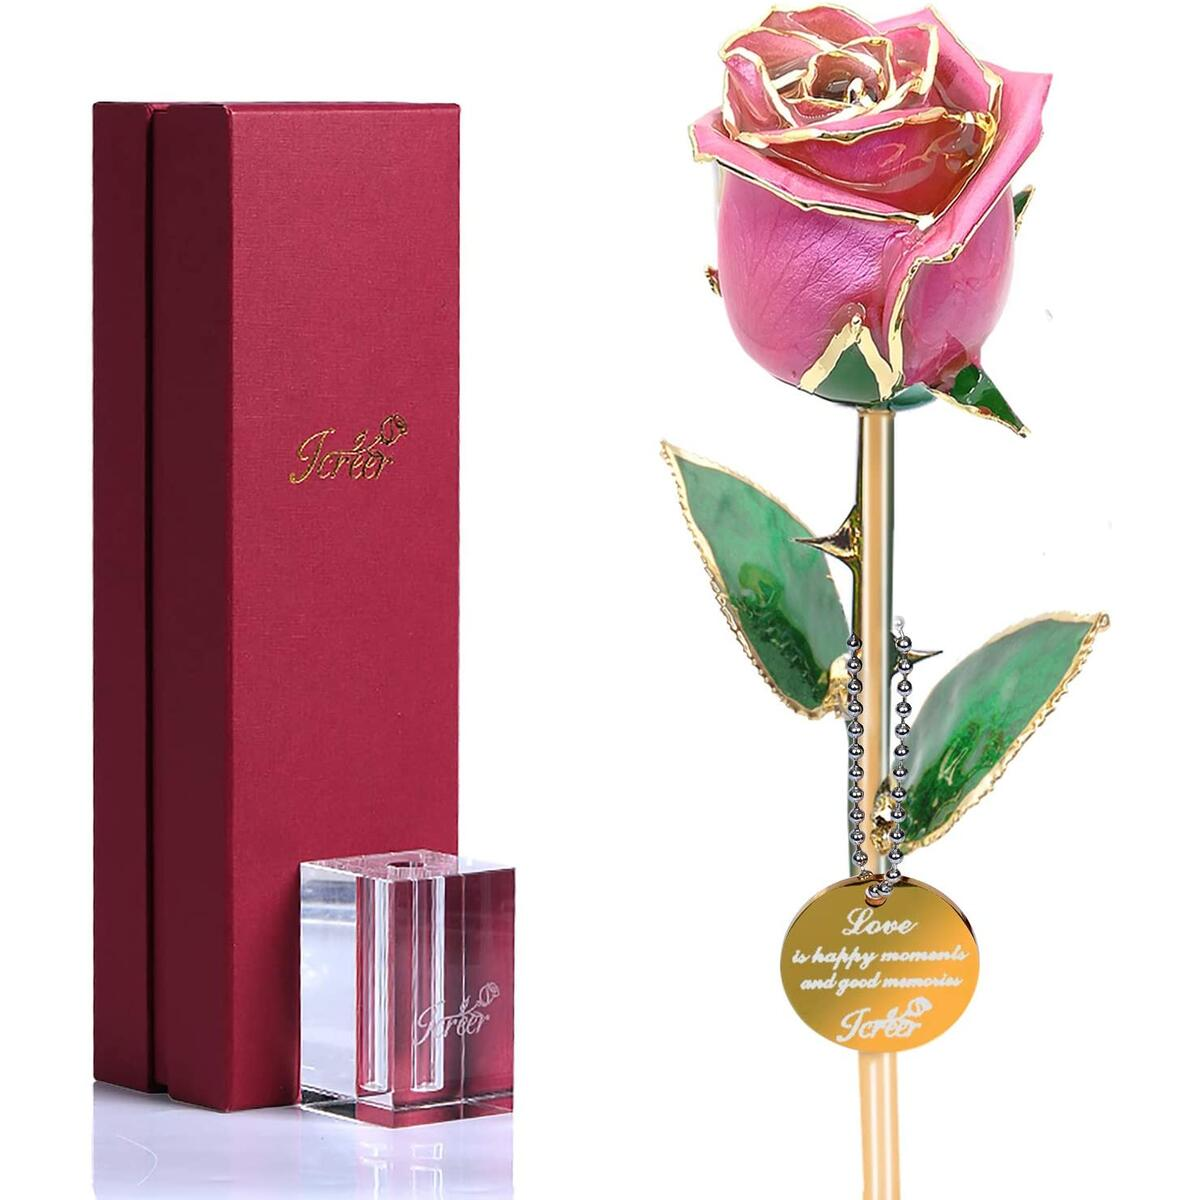 24K Gold Rose Crystal Rose Last Forever,Birthday Mother's Day Valentine's Day Christmas Anniversary Gifts for Her